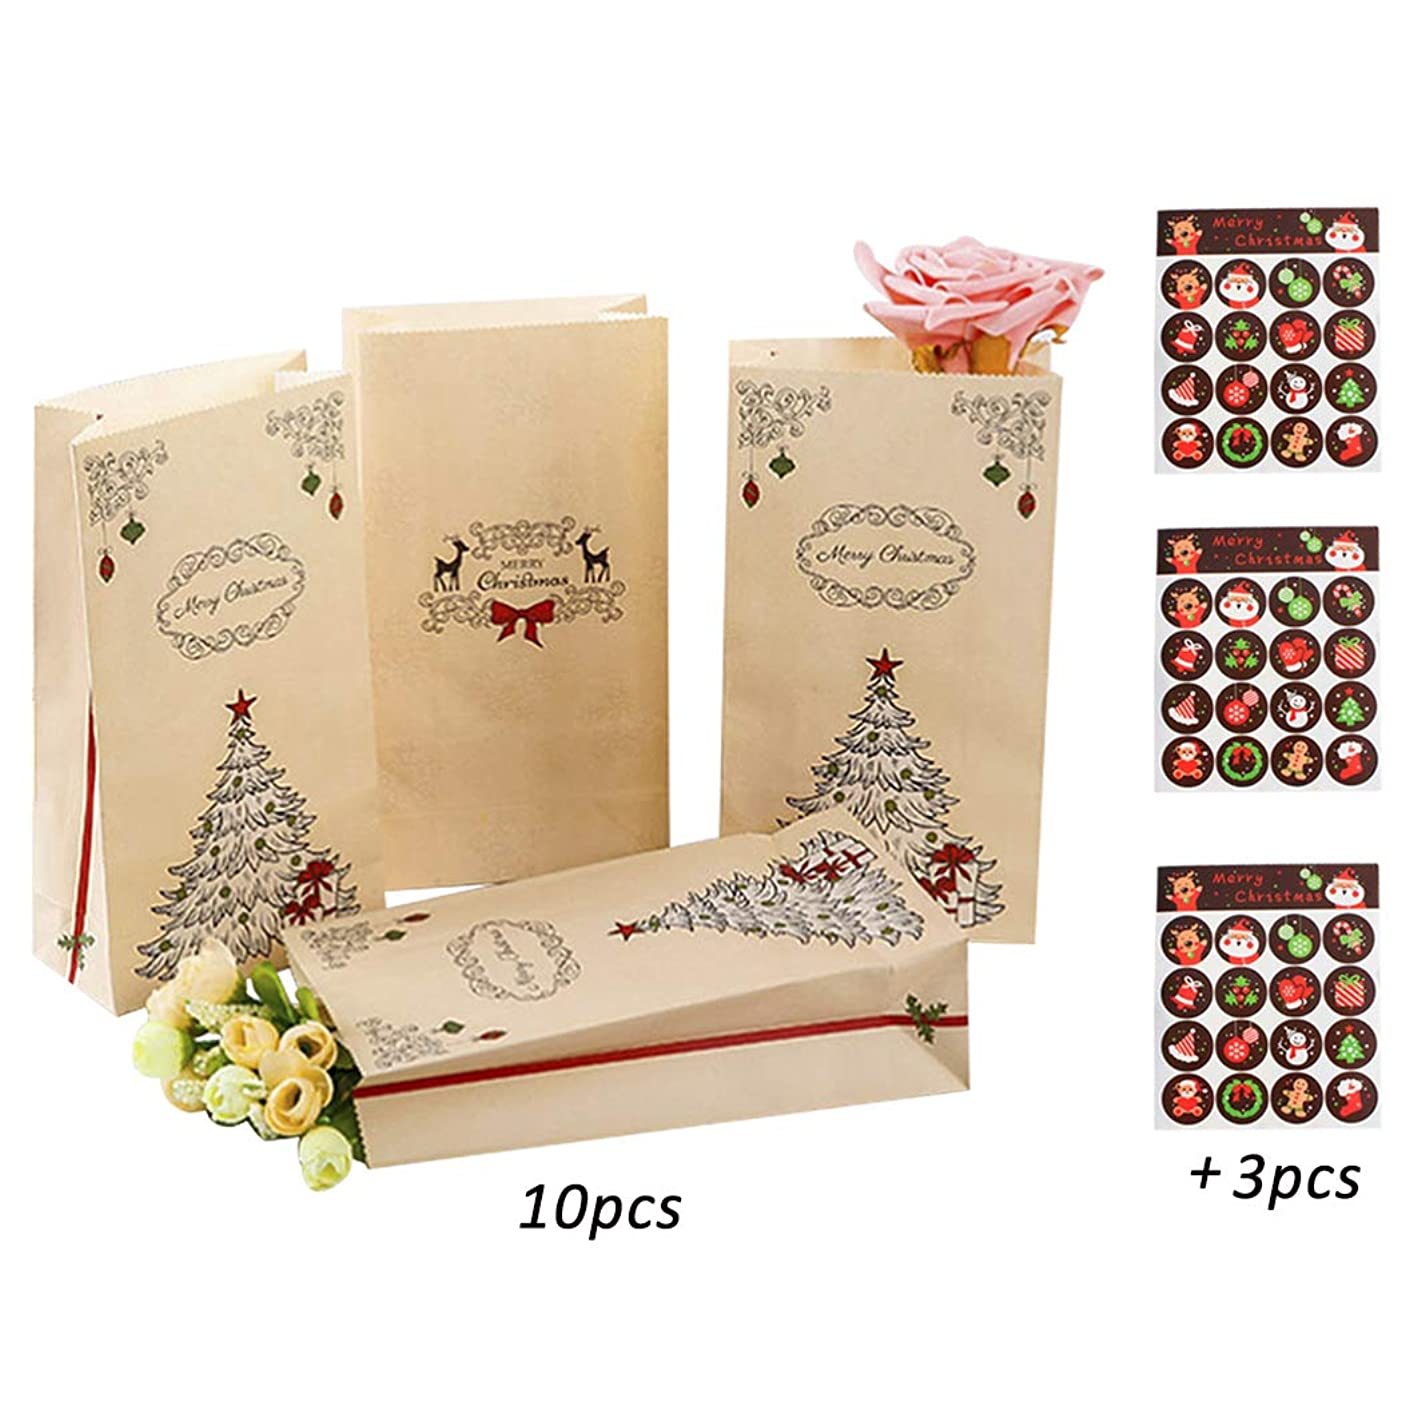 iSuperb 10 Pieces Christmas Gift Bags Random Style with 3 Sheets Christmas Sticker Packs for Kids Christmas Decoration (10 Pieces)